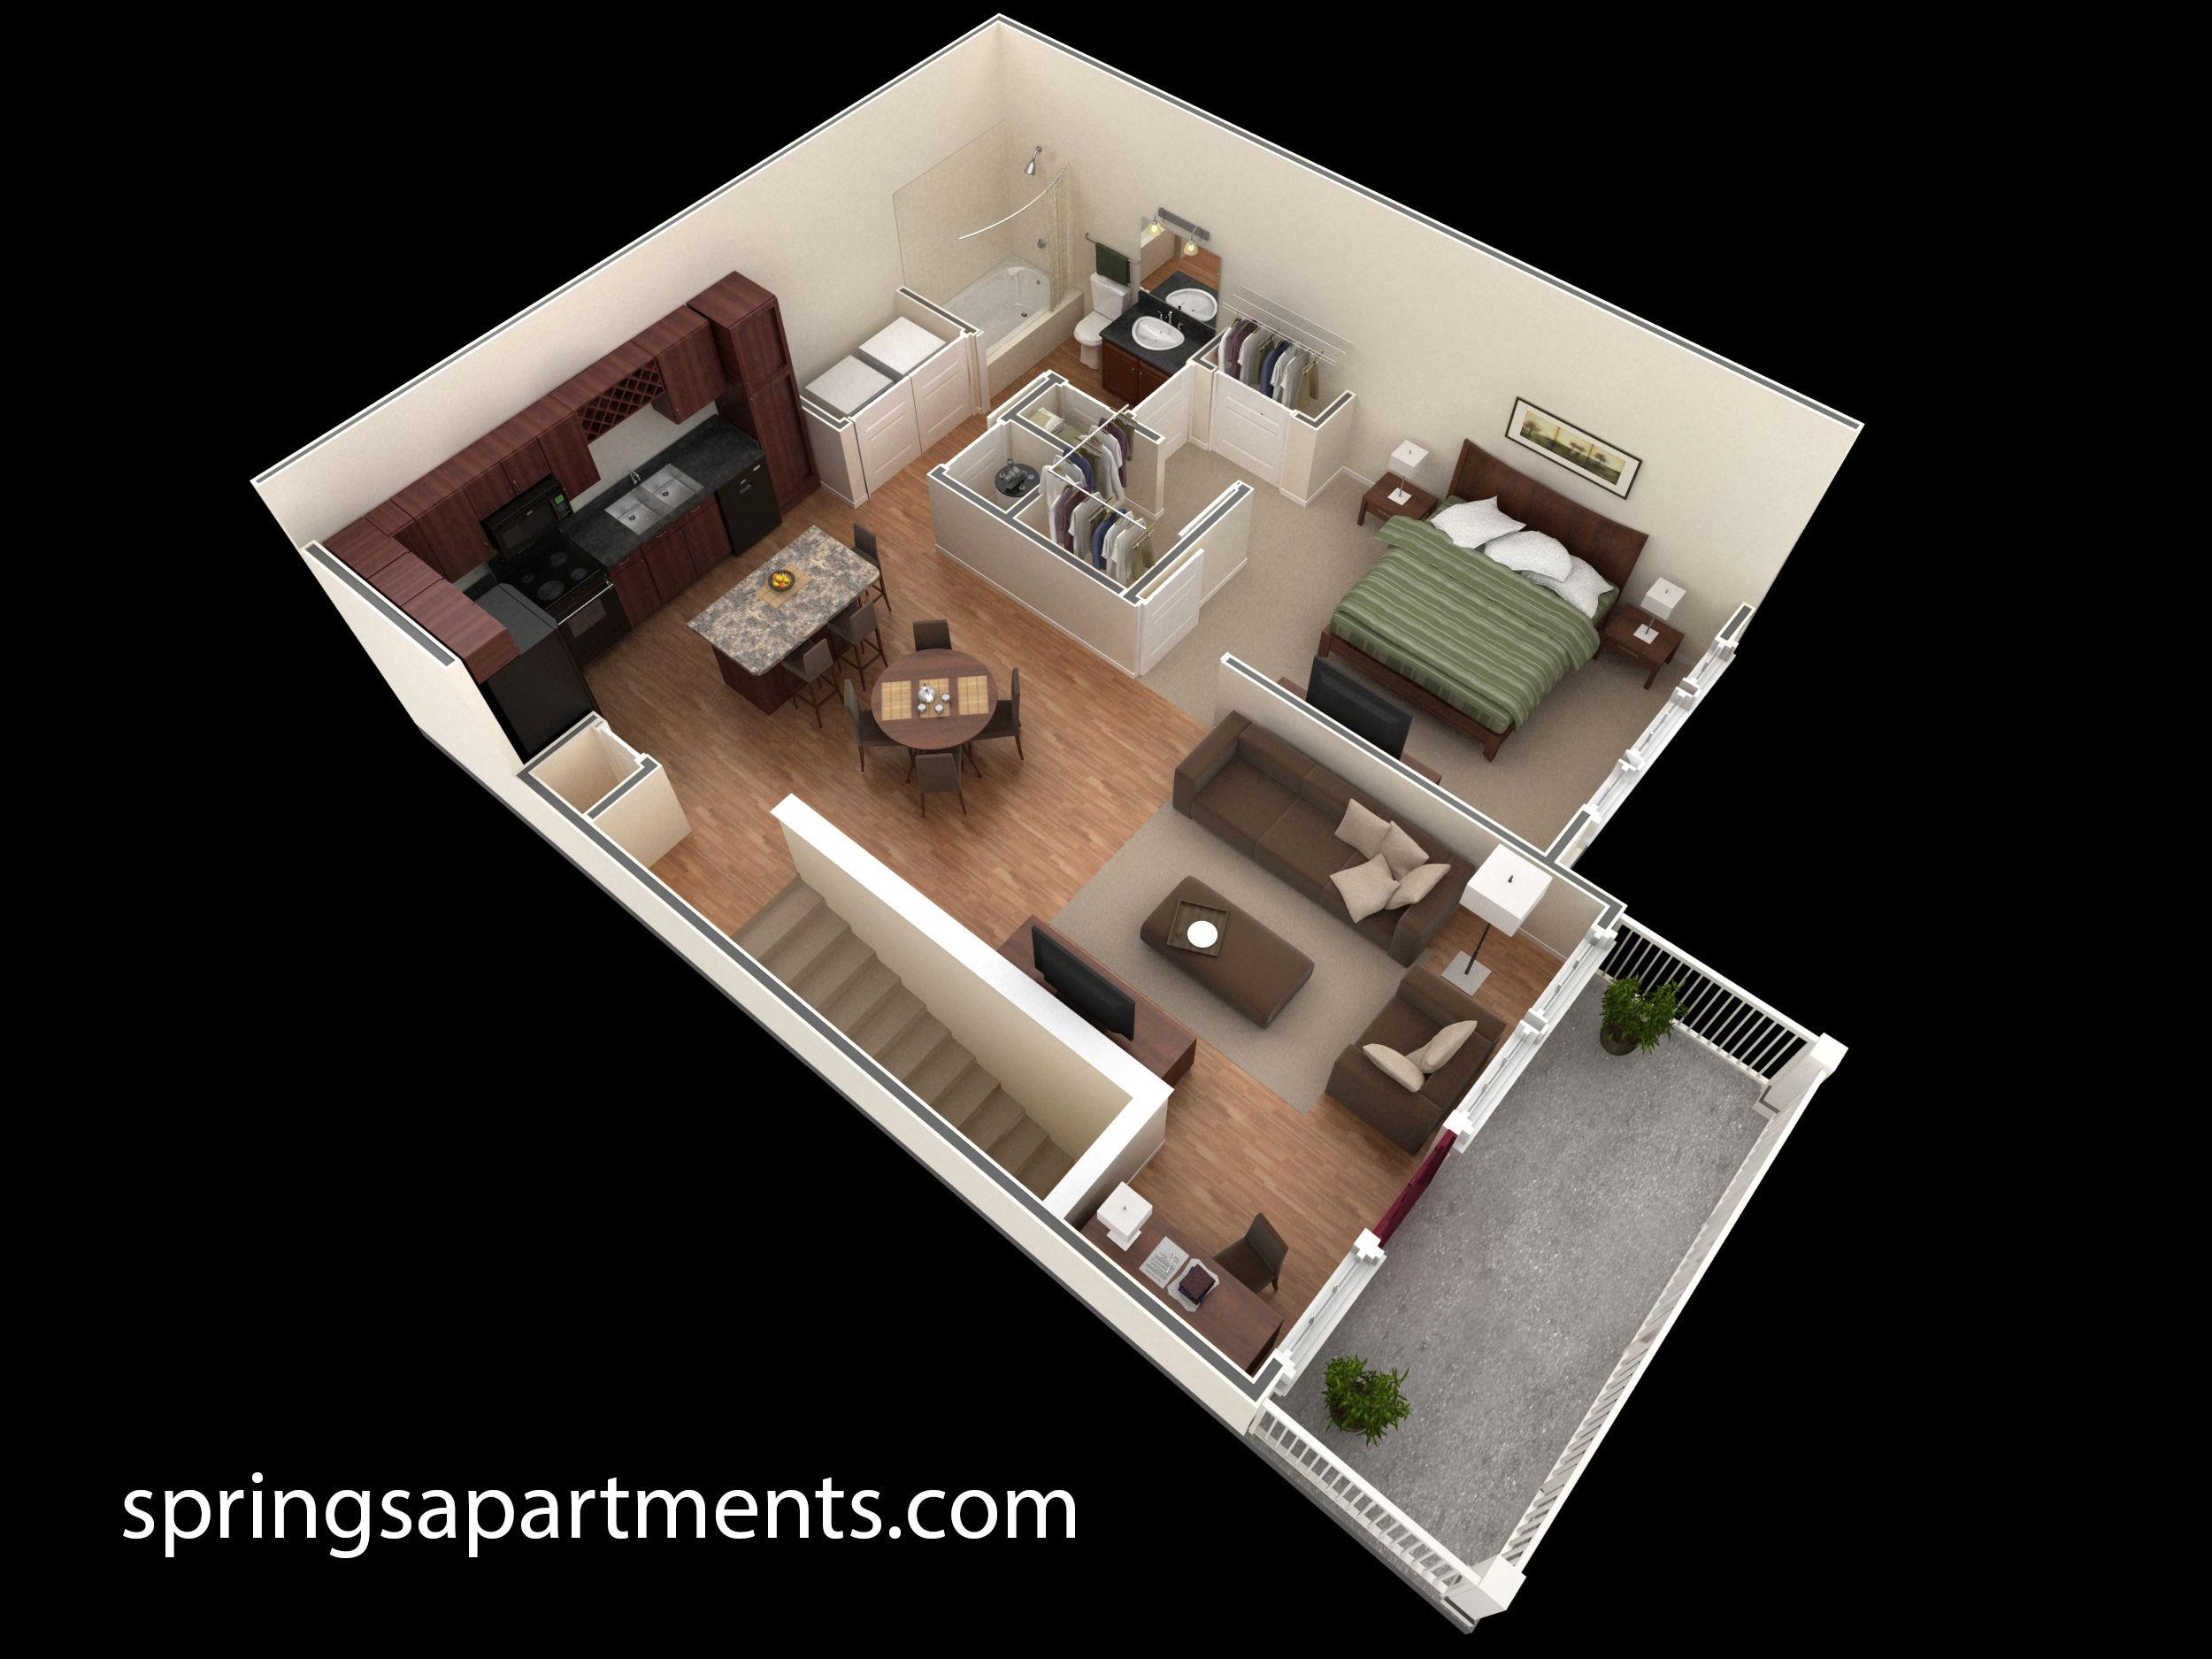 1 Bedroom 1 Bath 857sf At Springs At Creekside This 1 Bedroom Designer Overlook Comes With A Large Wa One Bedroom House Floor Plan Design Small House Design